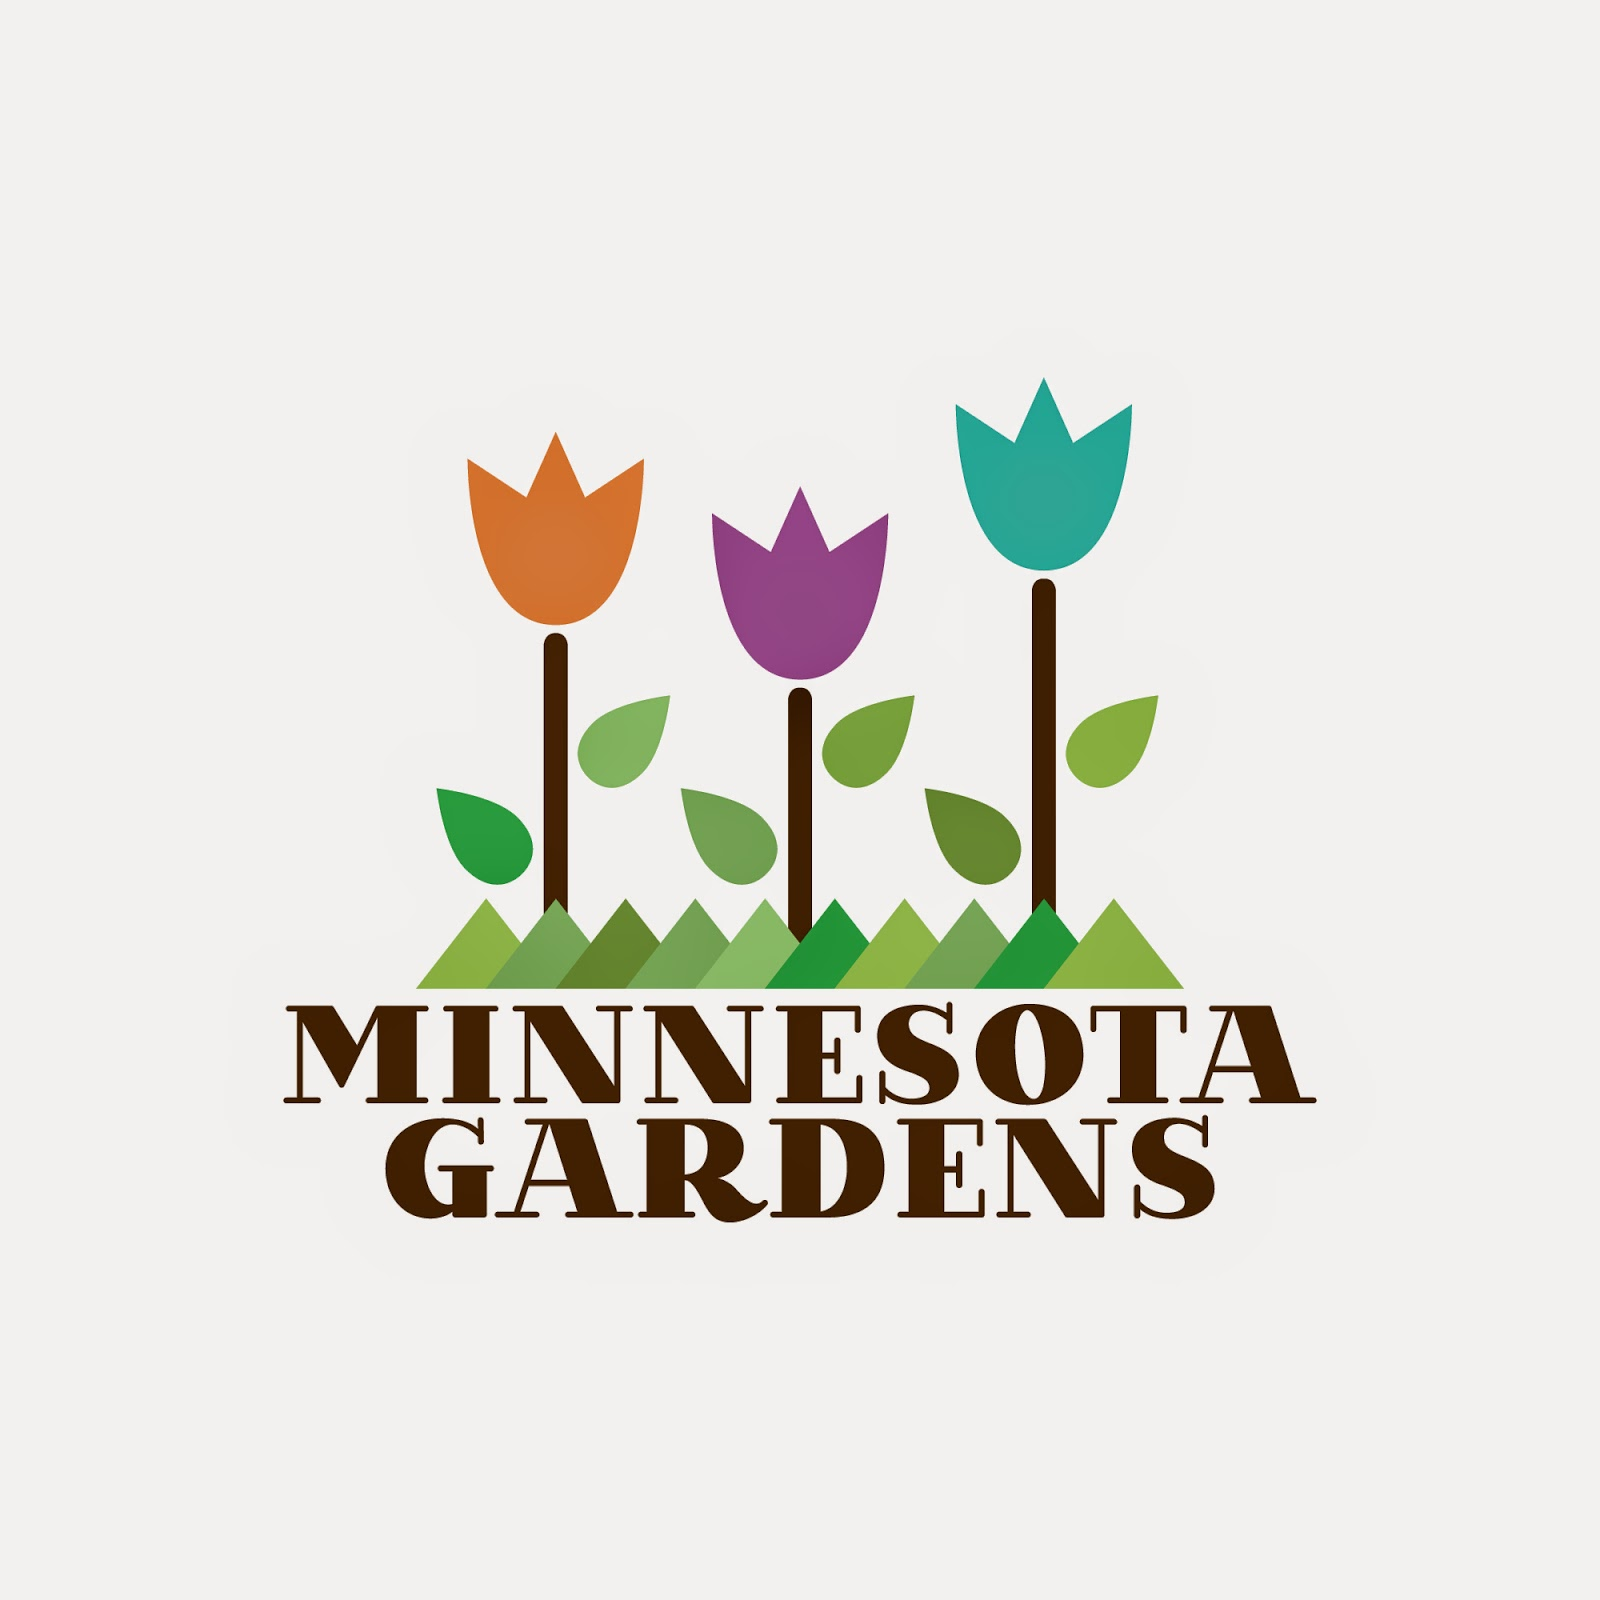 vegetable garden ideas minnesota simple vegetable garden ideas for minnesota plans scmnvj and - Vegetable Garden Ideas Minnesota